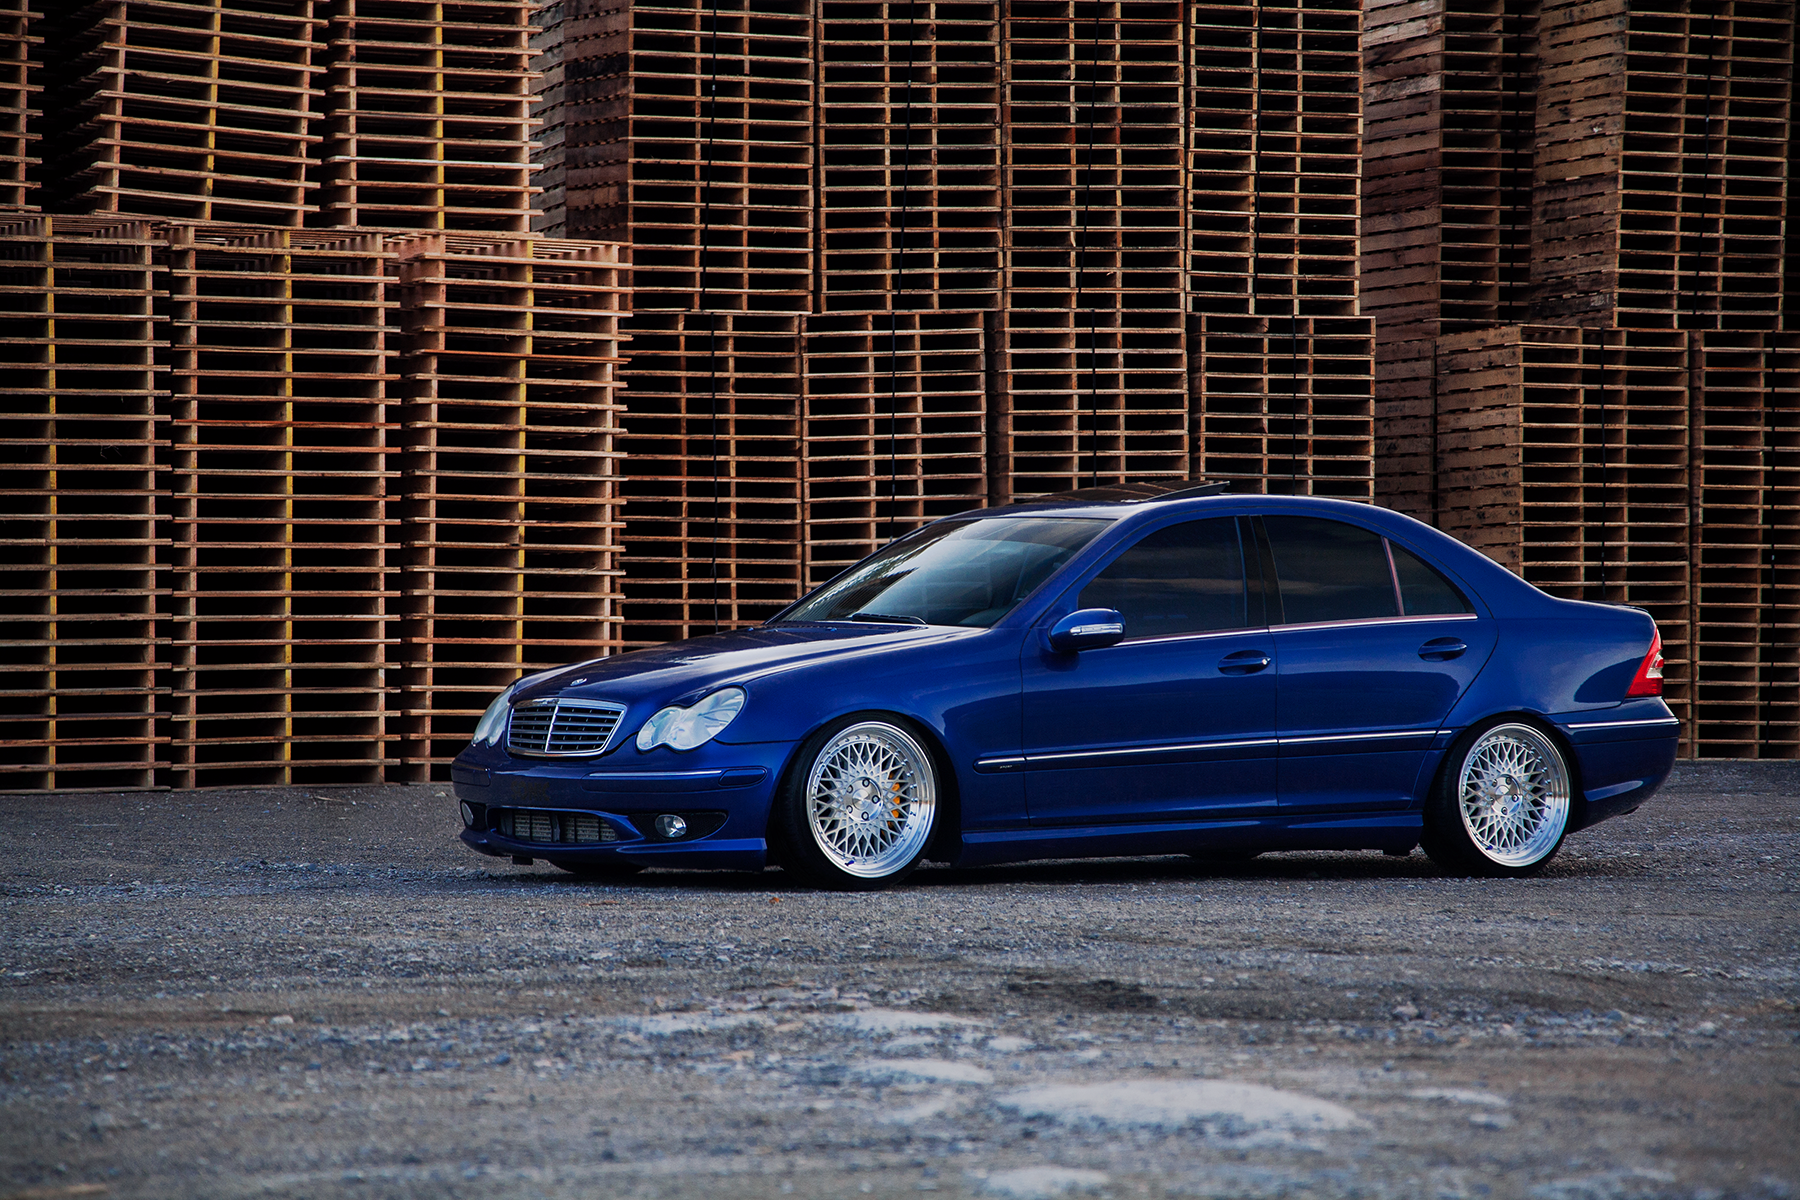 Mercedes Benz San Diego >> W203/CL203 STANCE/SUSPENSION/FITMENT THREAD - Page 3 - MBWorld.org Forums